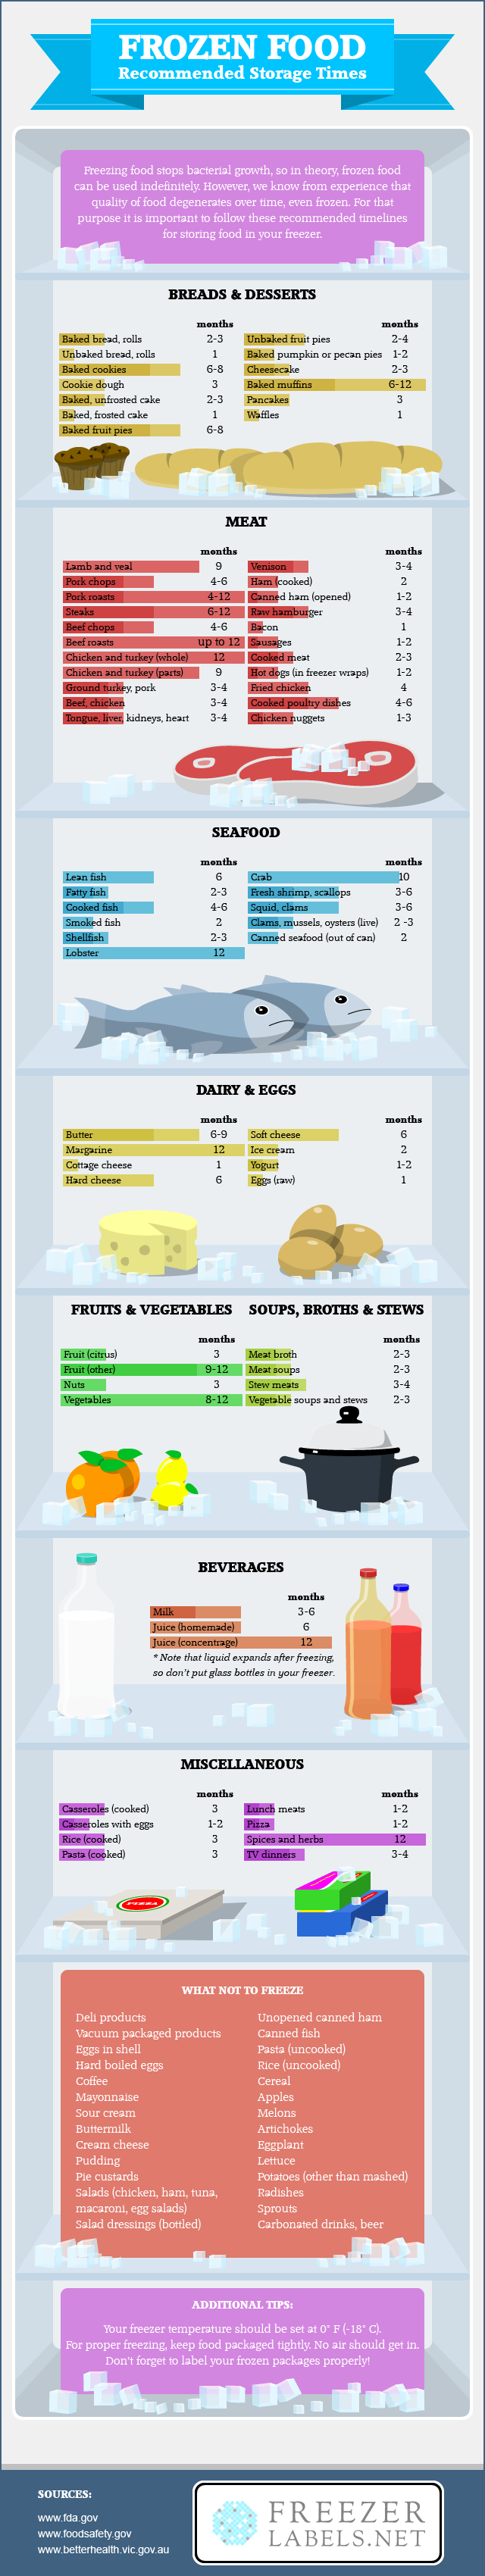 Frozen Food Recommended Storage Times How Long You Can Actually Foods In Your Freezer